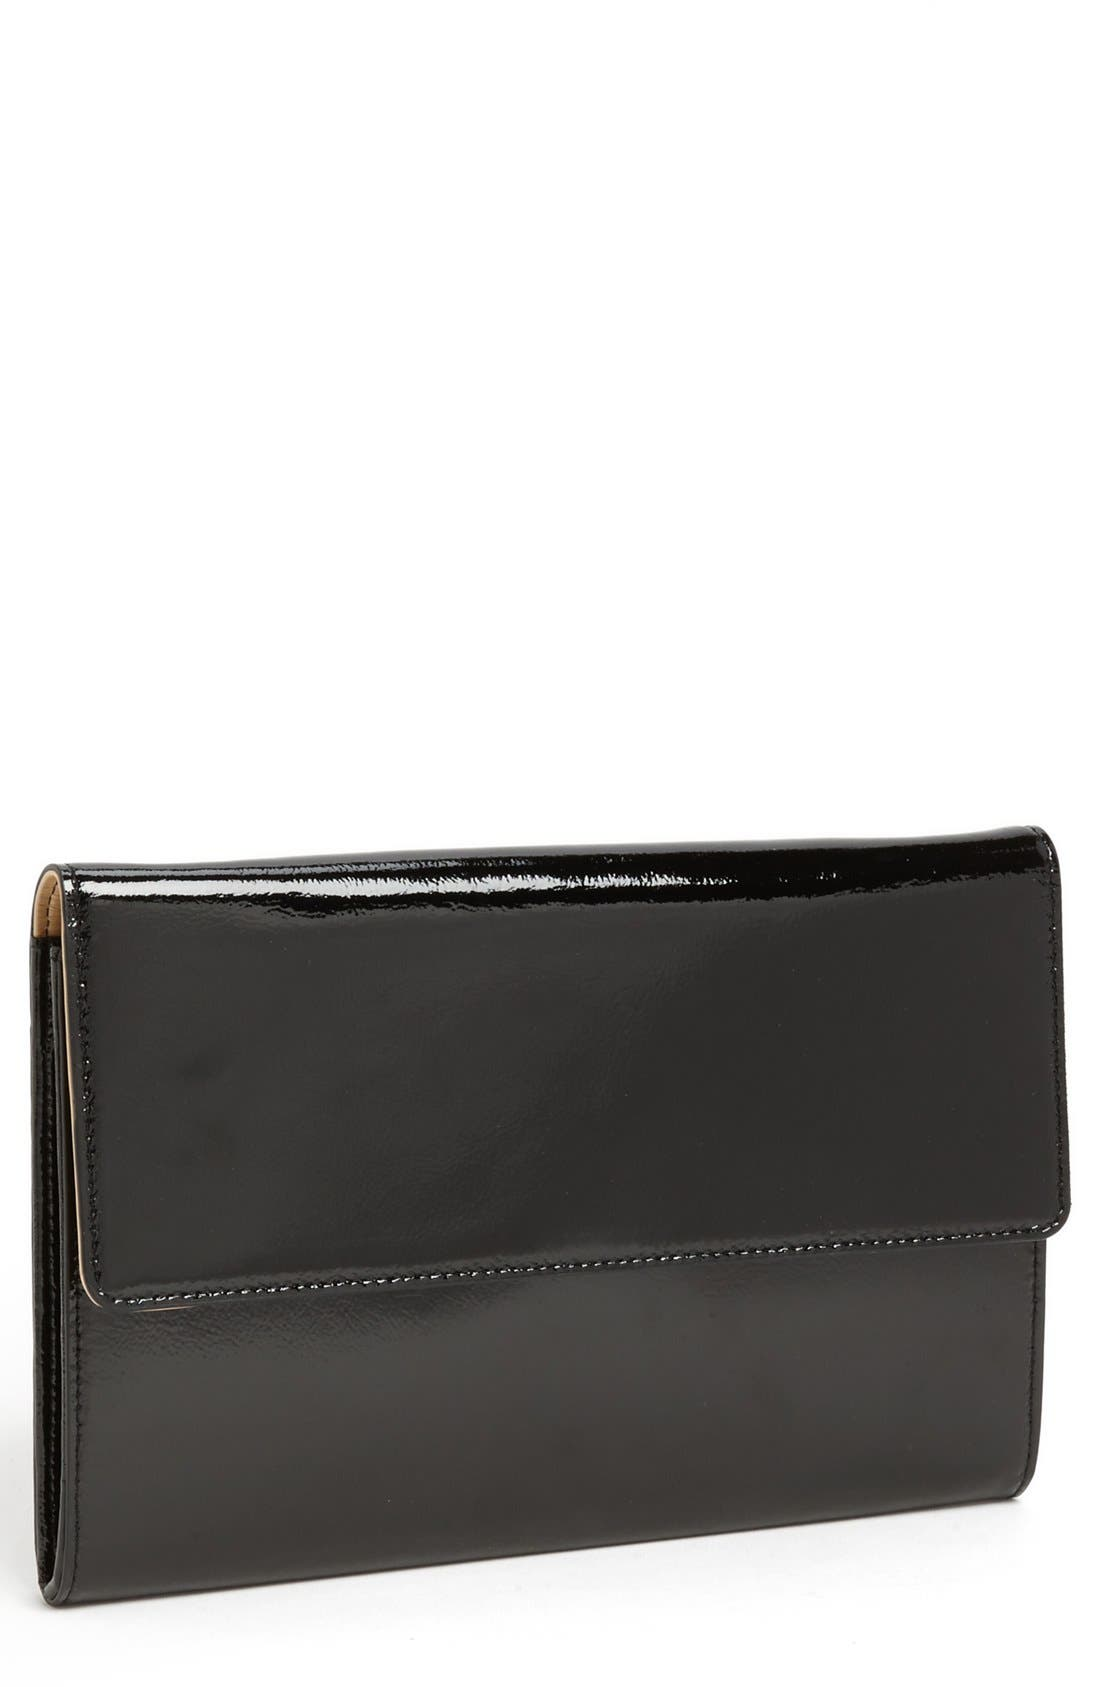 Patent Leather Clutch,                         Main,                         color, 001